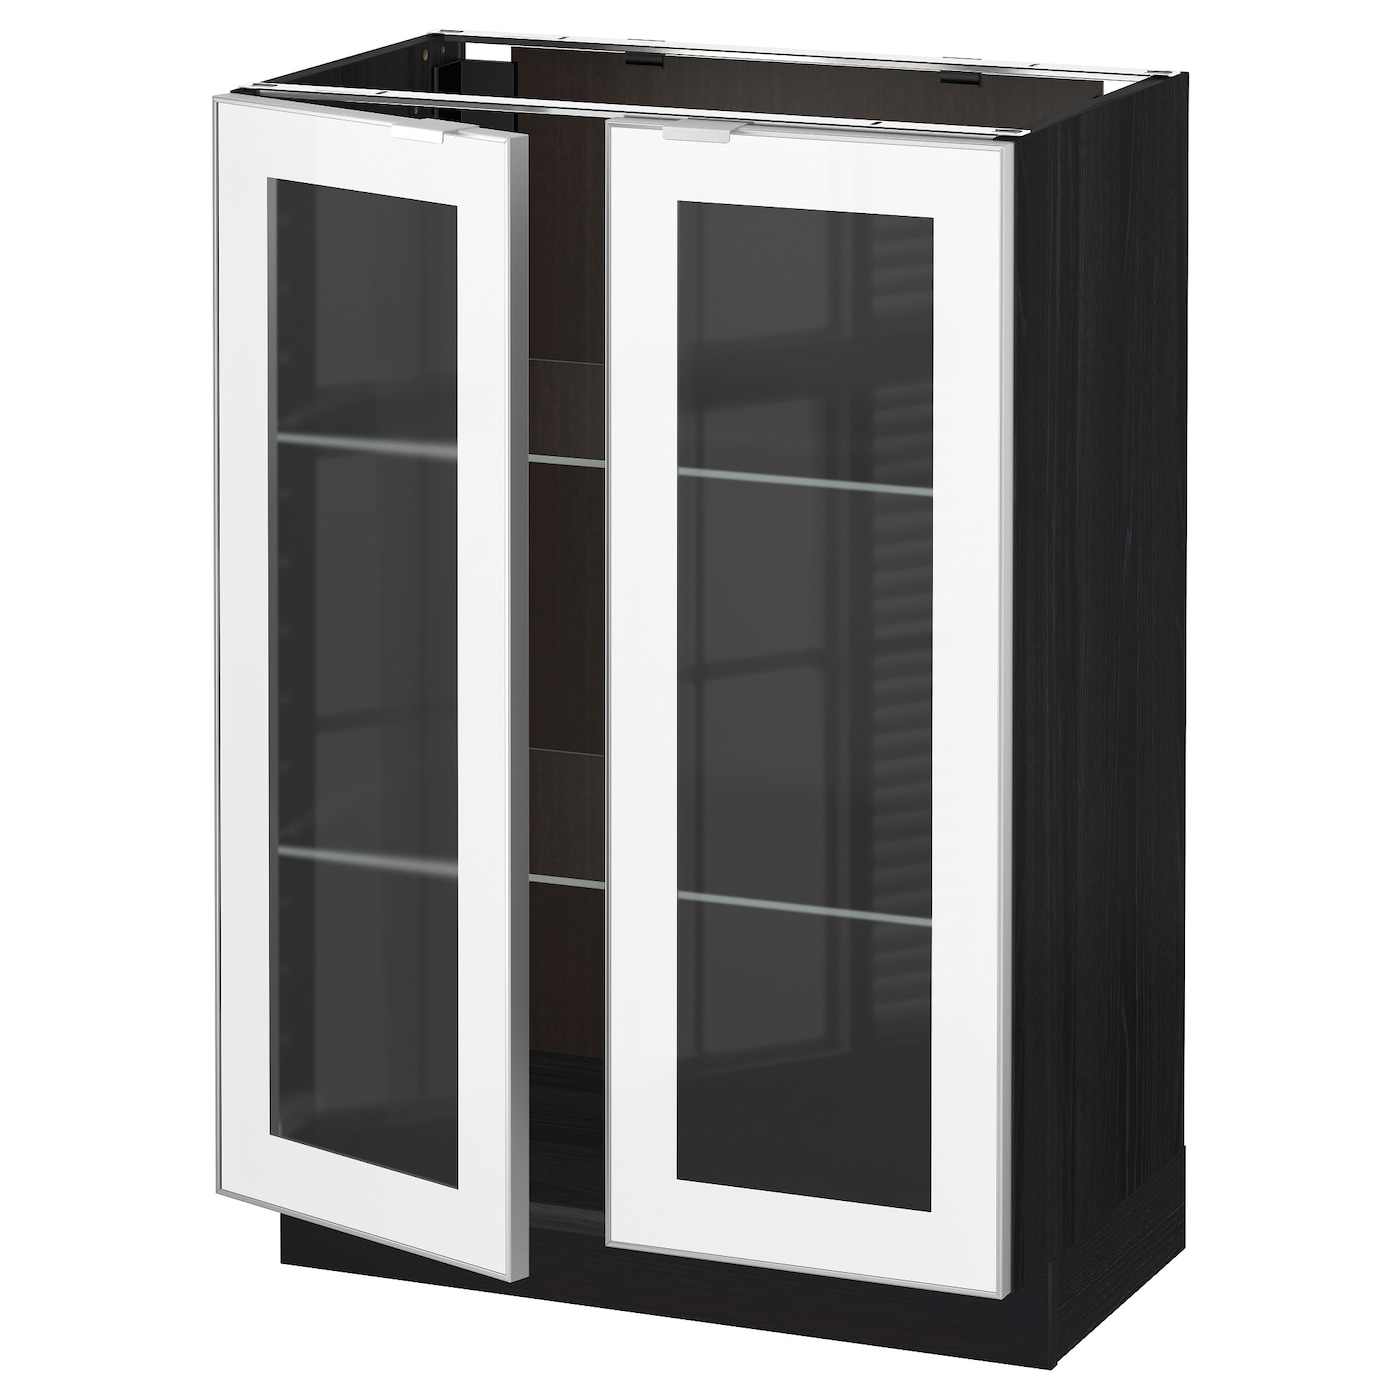 Metod base cabinet with 2 glass doors black jutis frosted for Black kitchen cabinets with glass doors